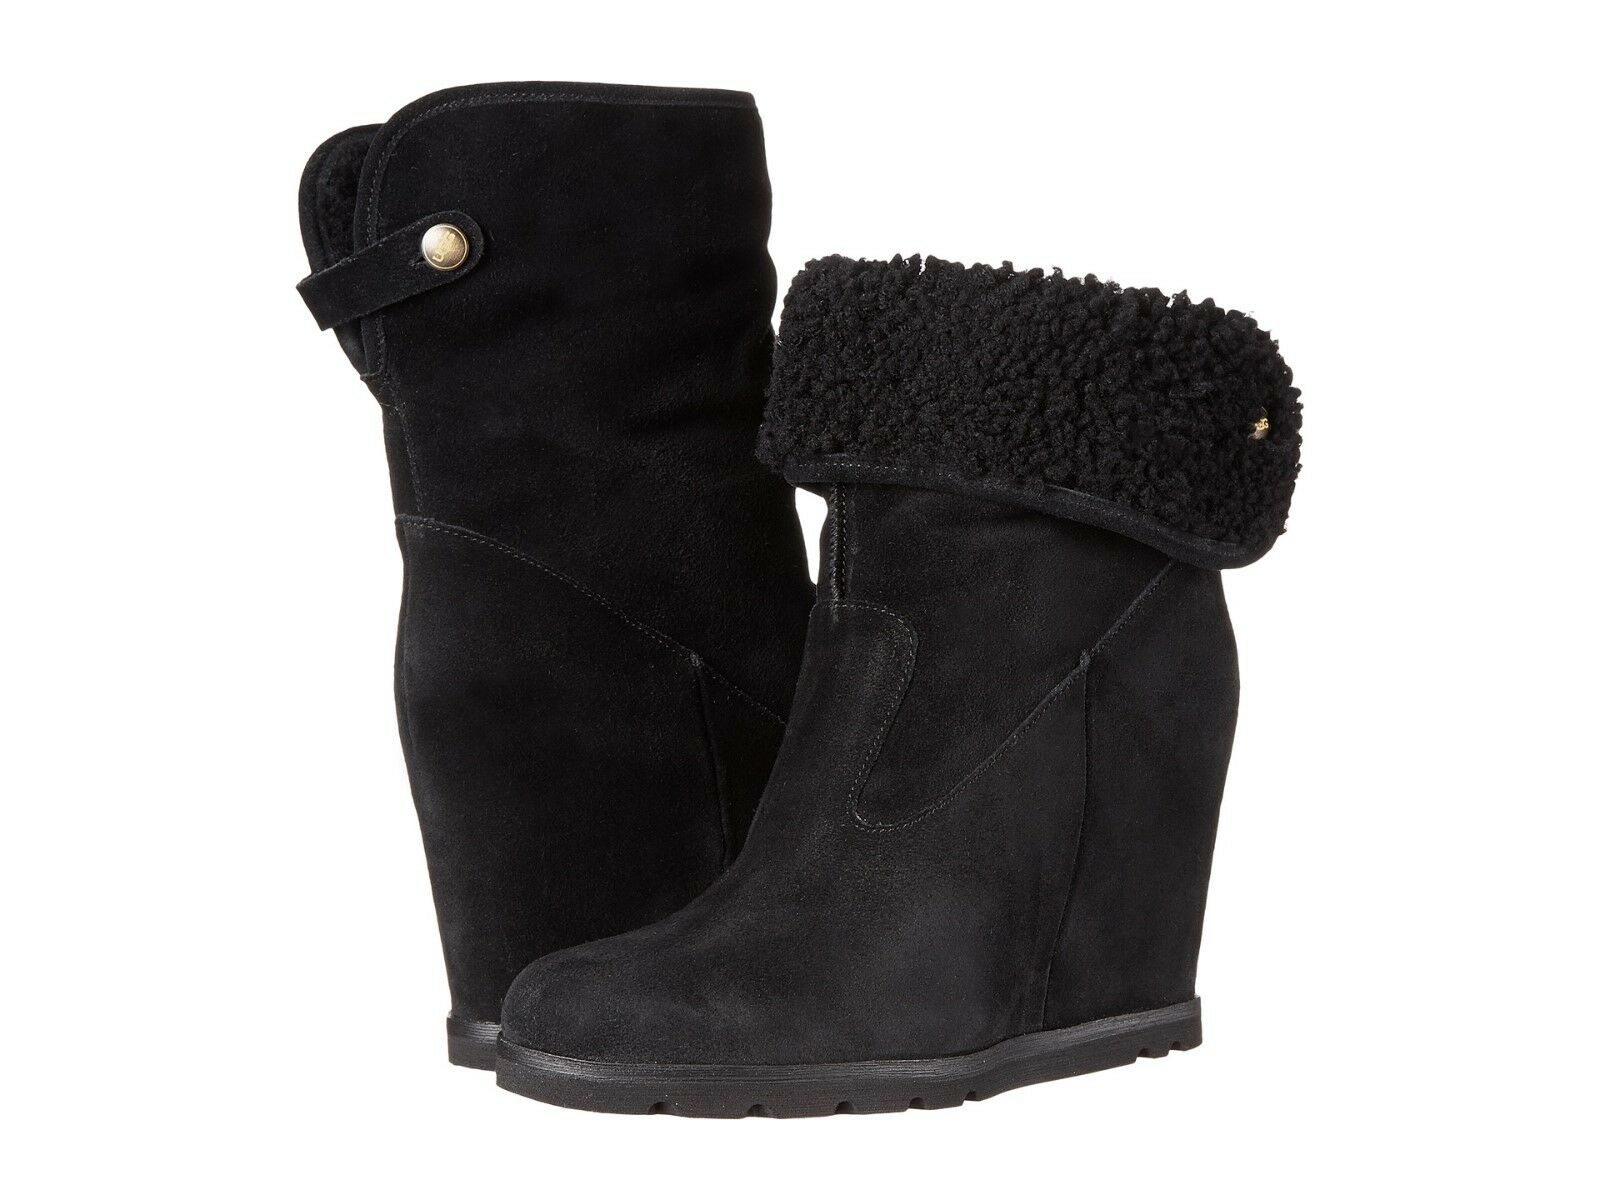 Womens Boots UGG Kyra Black Suede